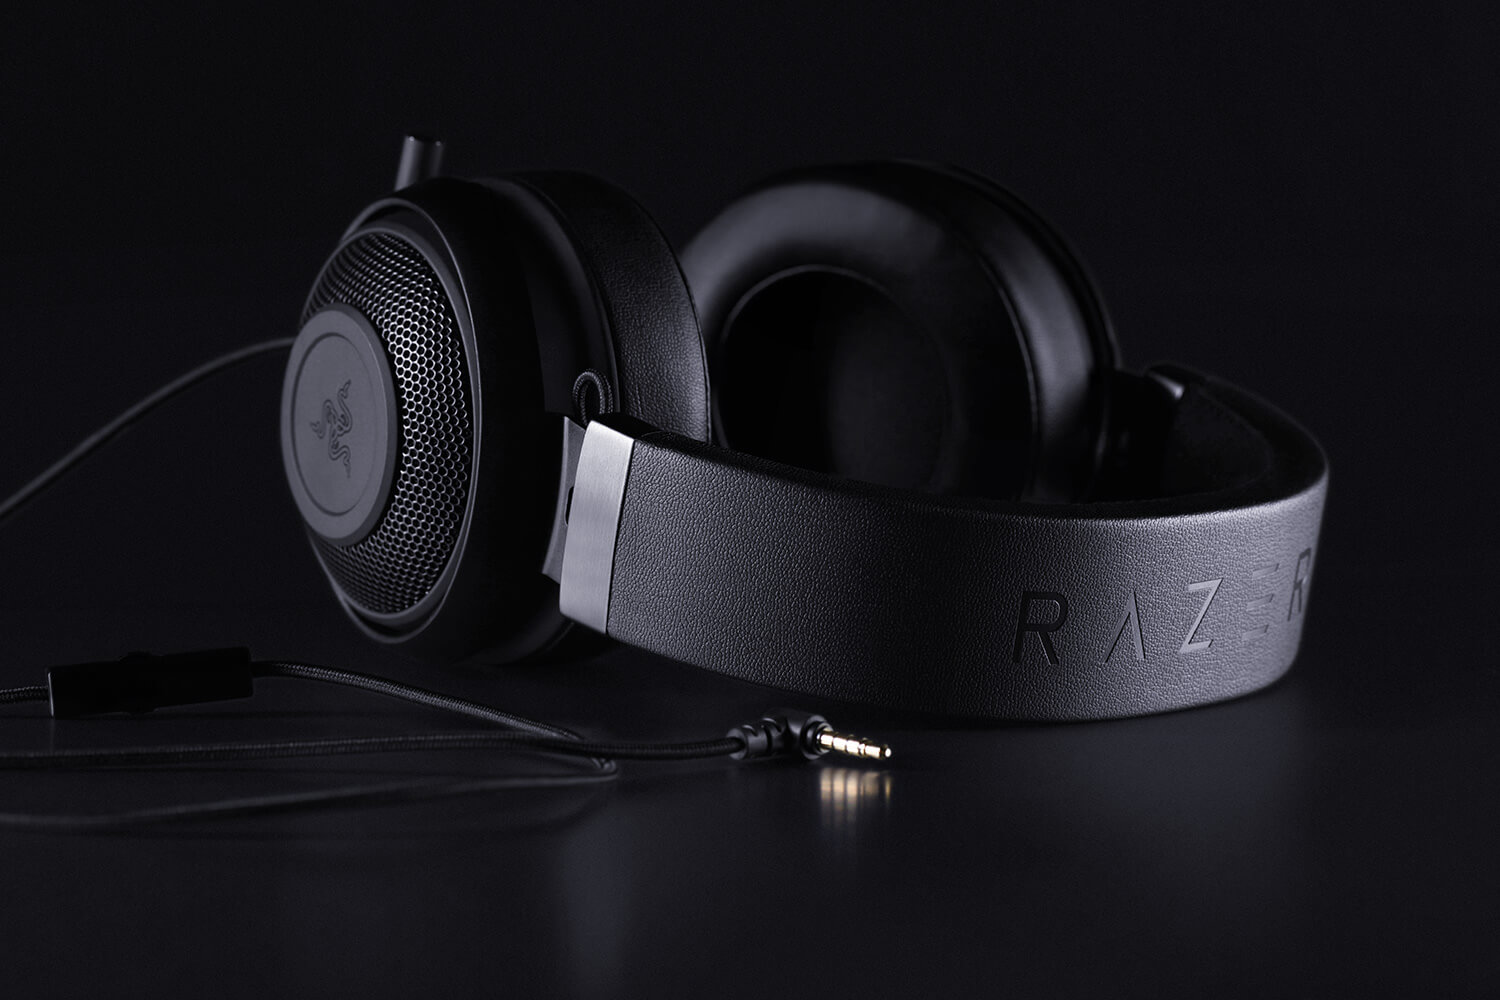 Razer Kraken Pro V2 Gaming Headset For Esports Pros